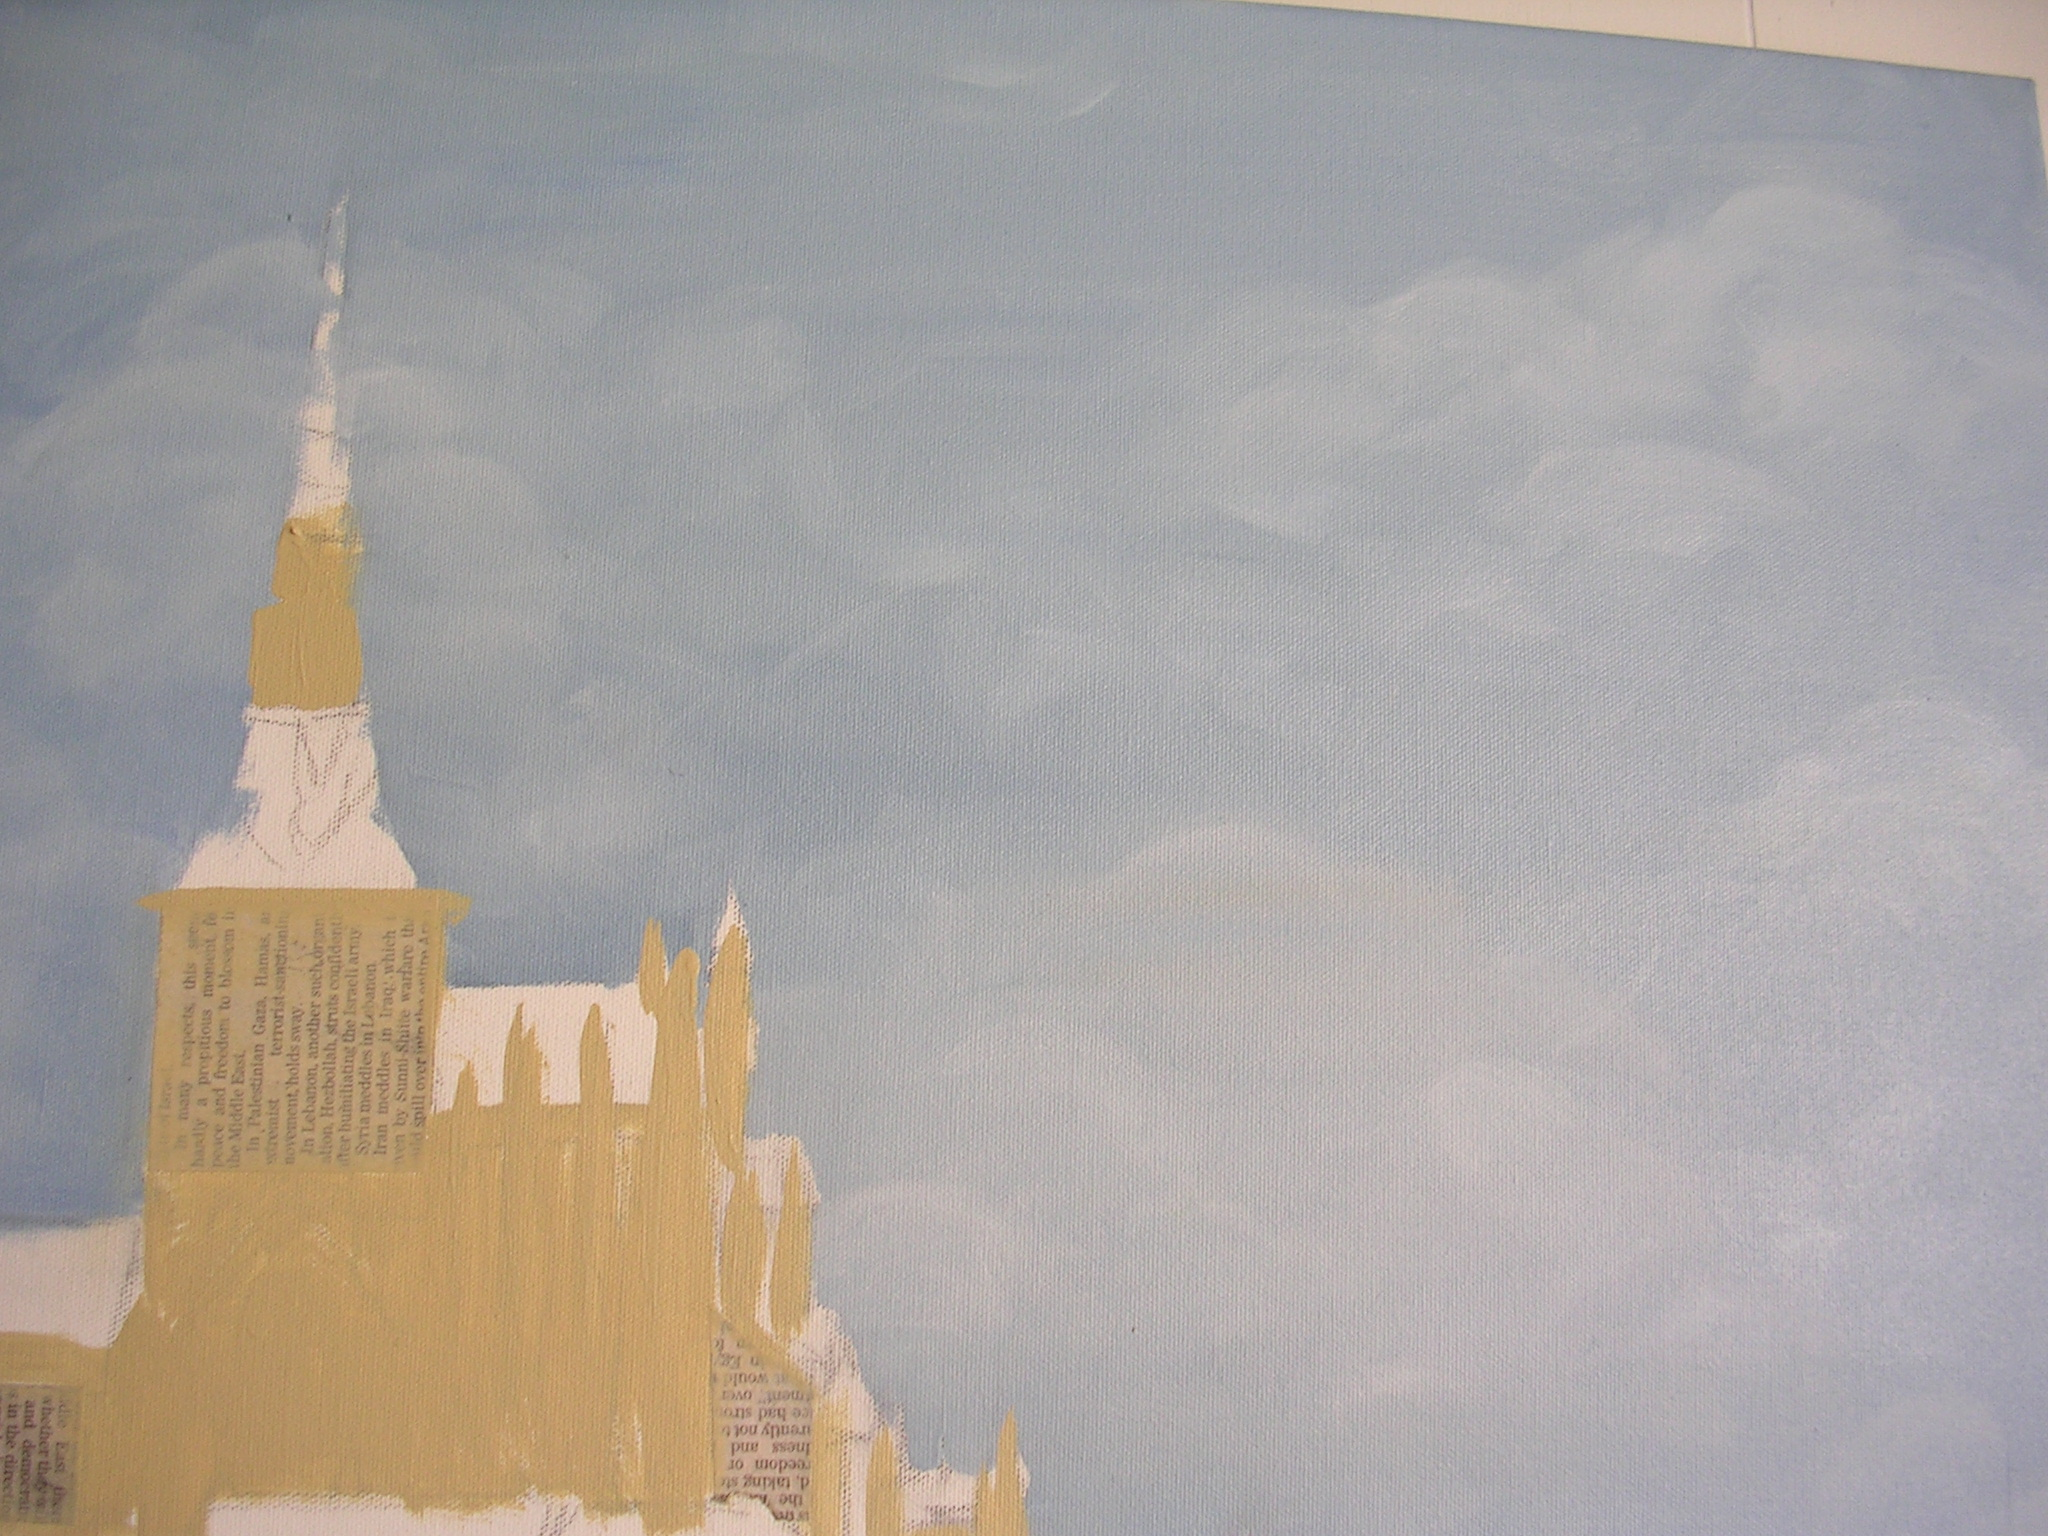 Whispy clouds in a painting I'm working on